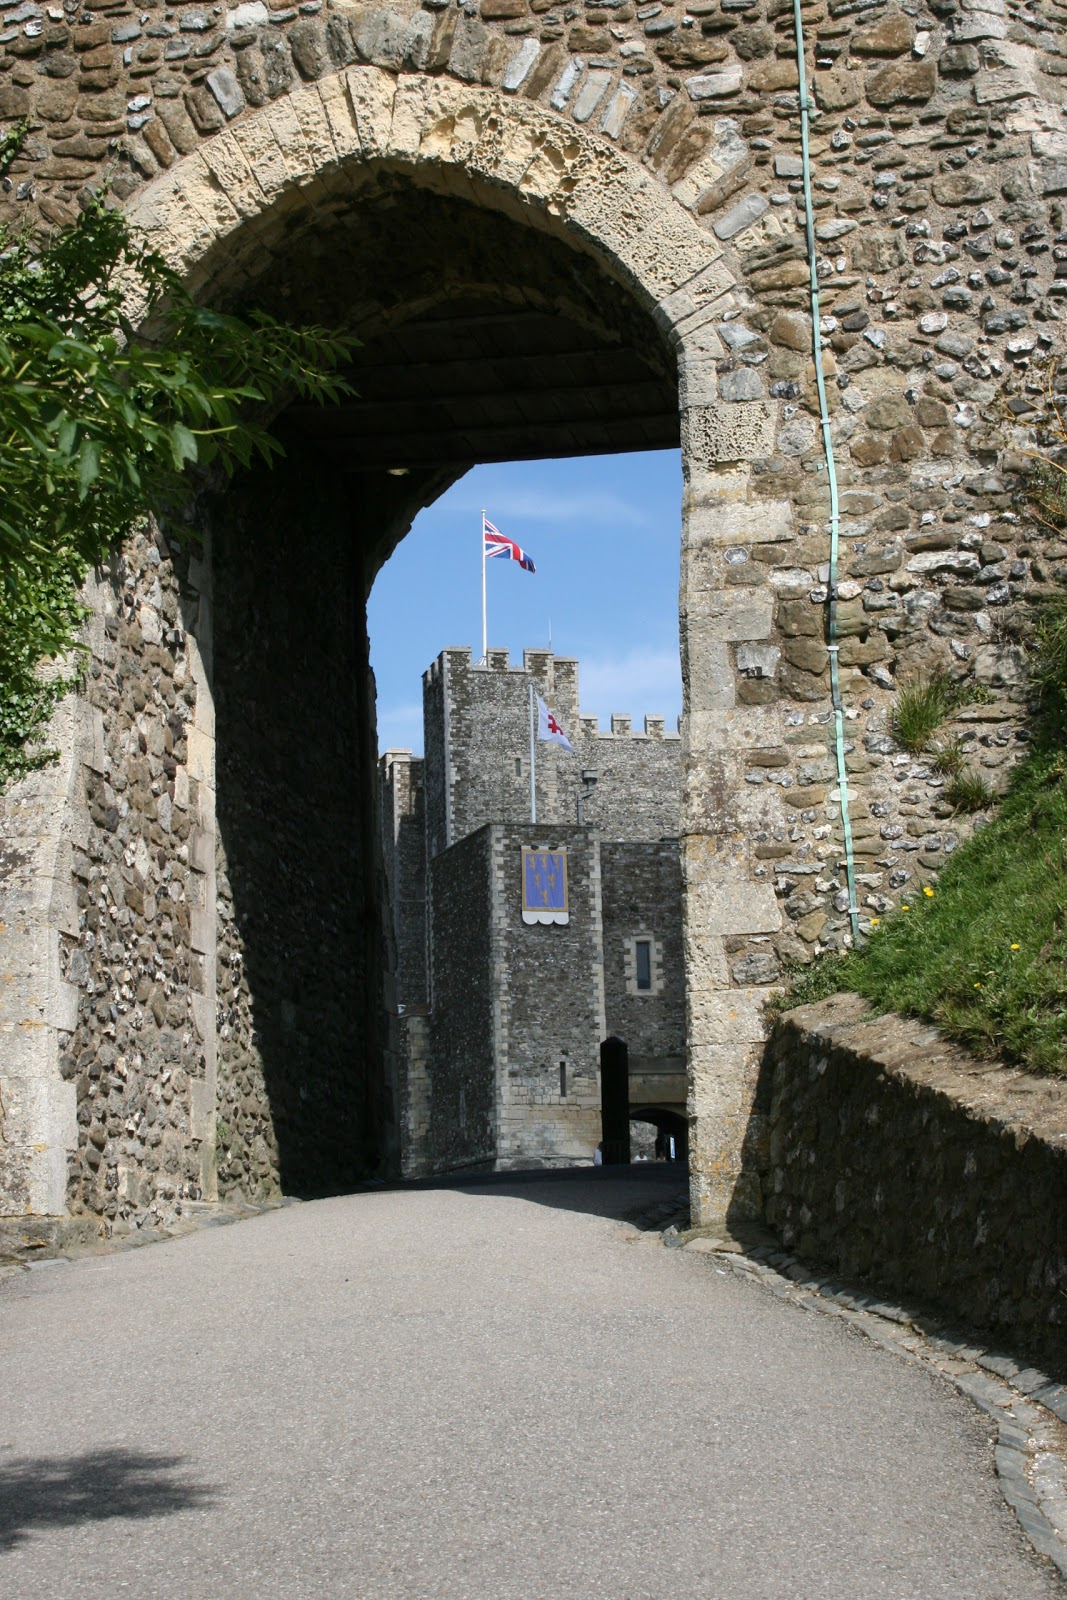 Dover castle eep seen through stone gate entrance